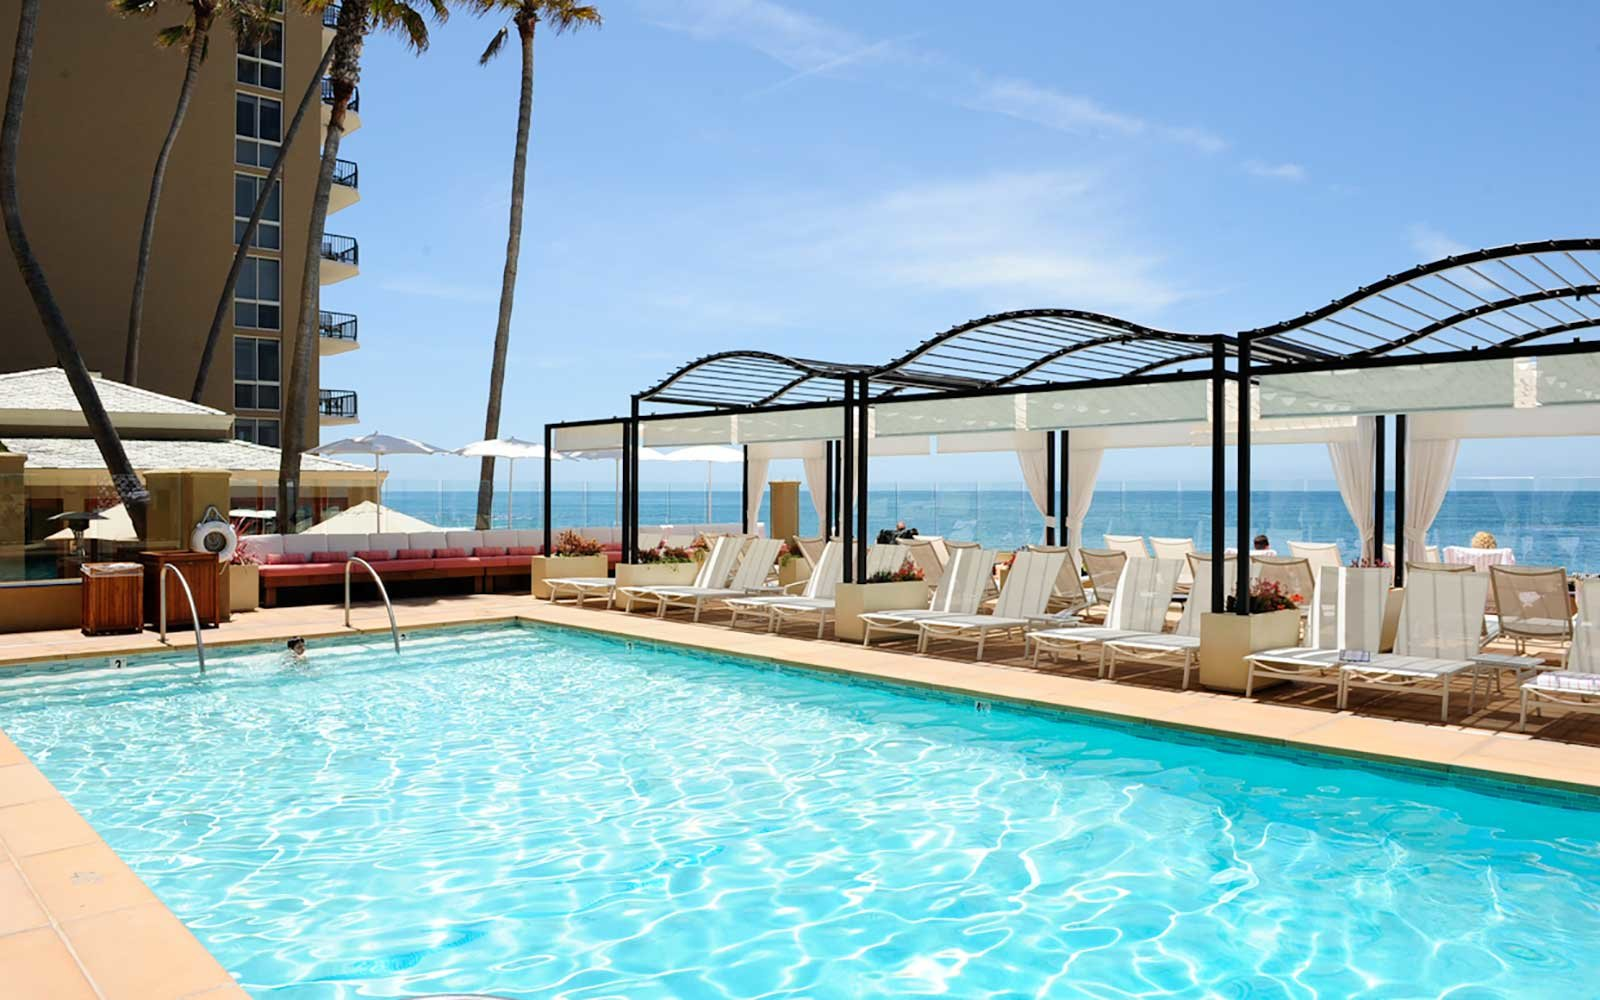 Top Romantic Hotels: Surf & Sand Resort, Laguna Beach, California